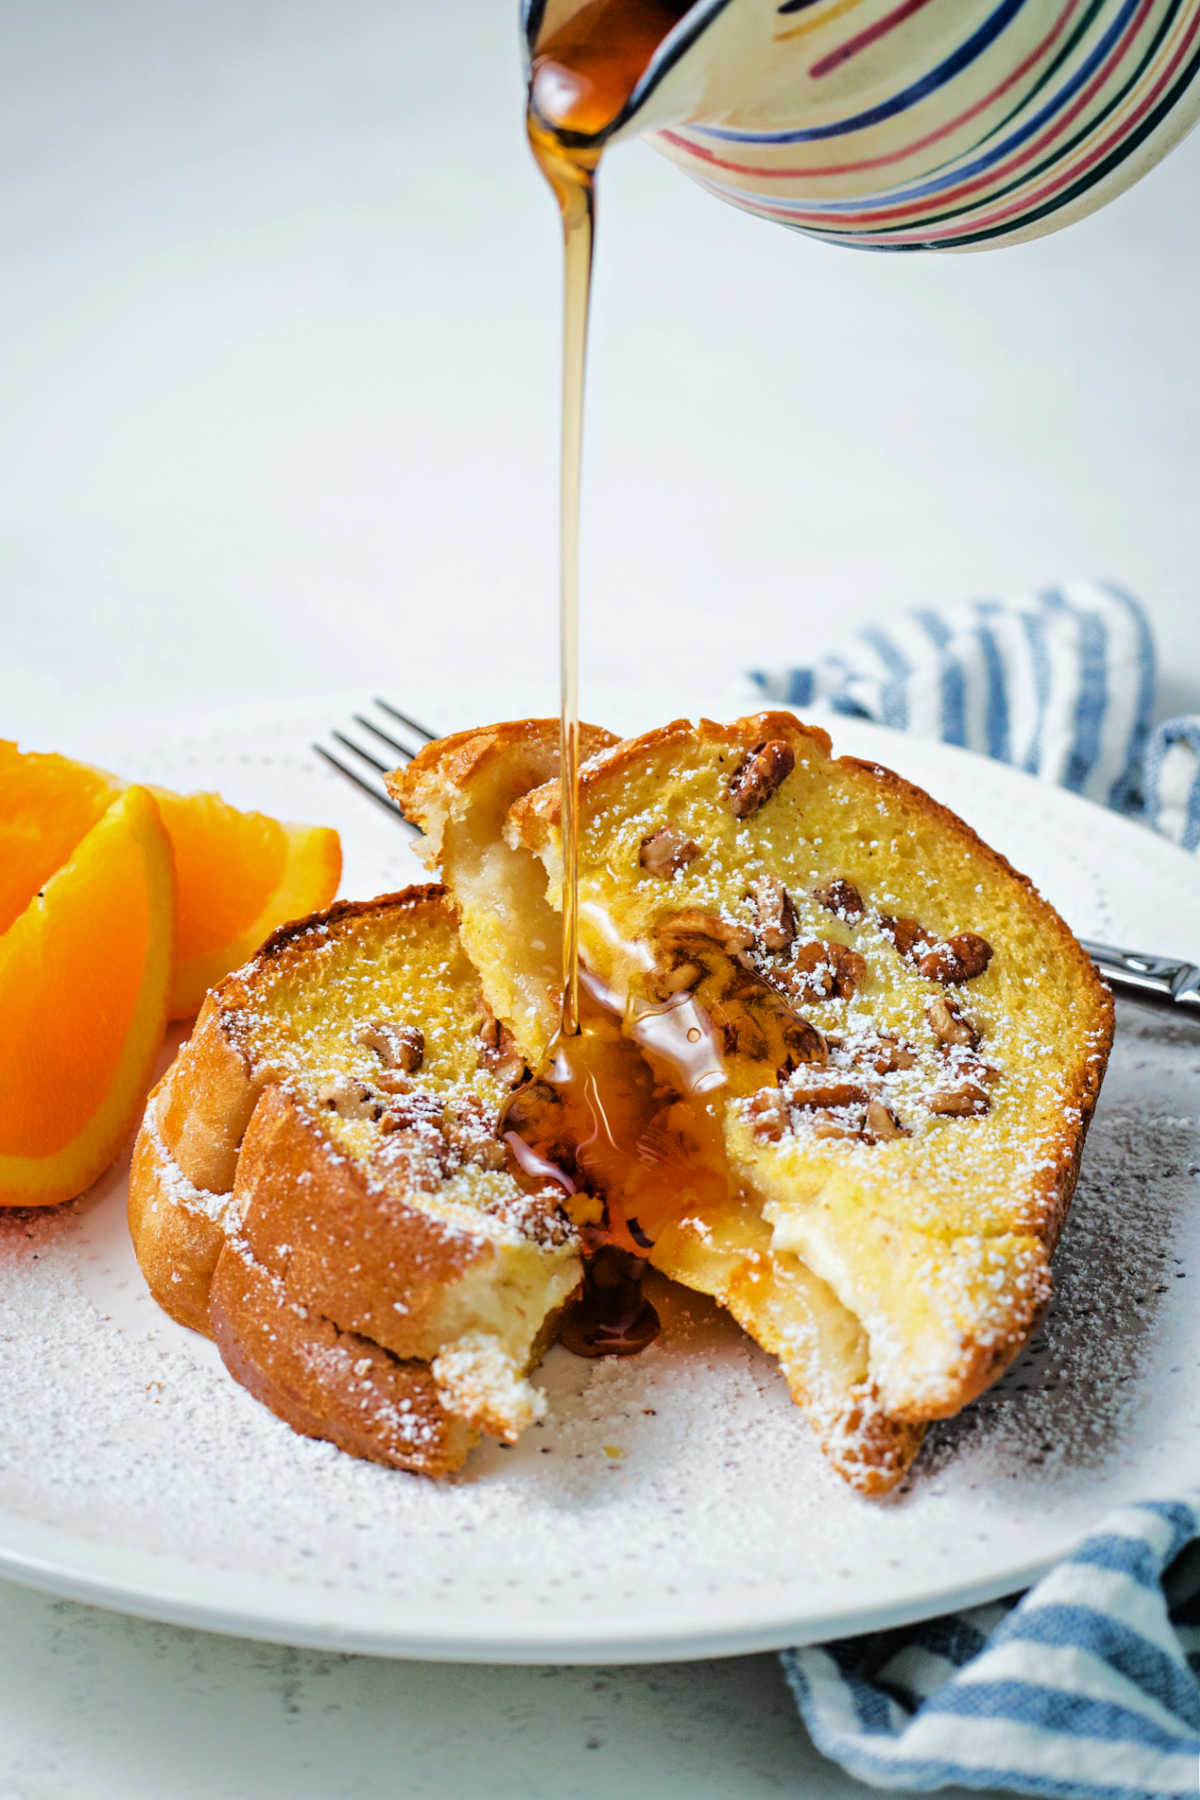 a stream of maple syrup being poured over slices of orange french toast on a white plate sitting on a table.